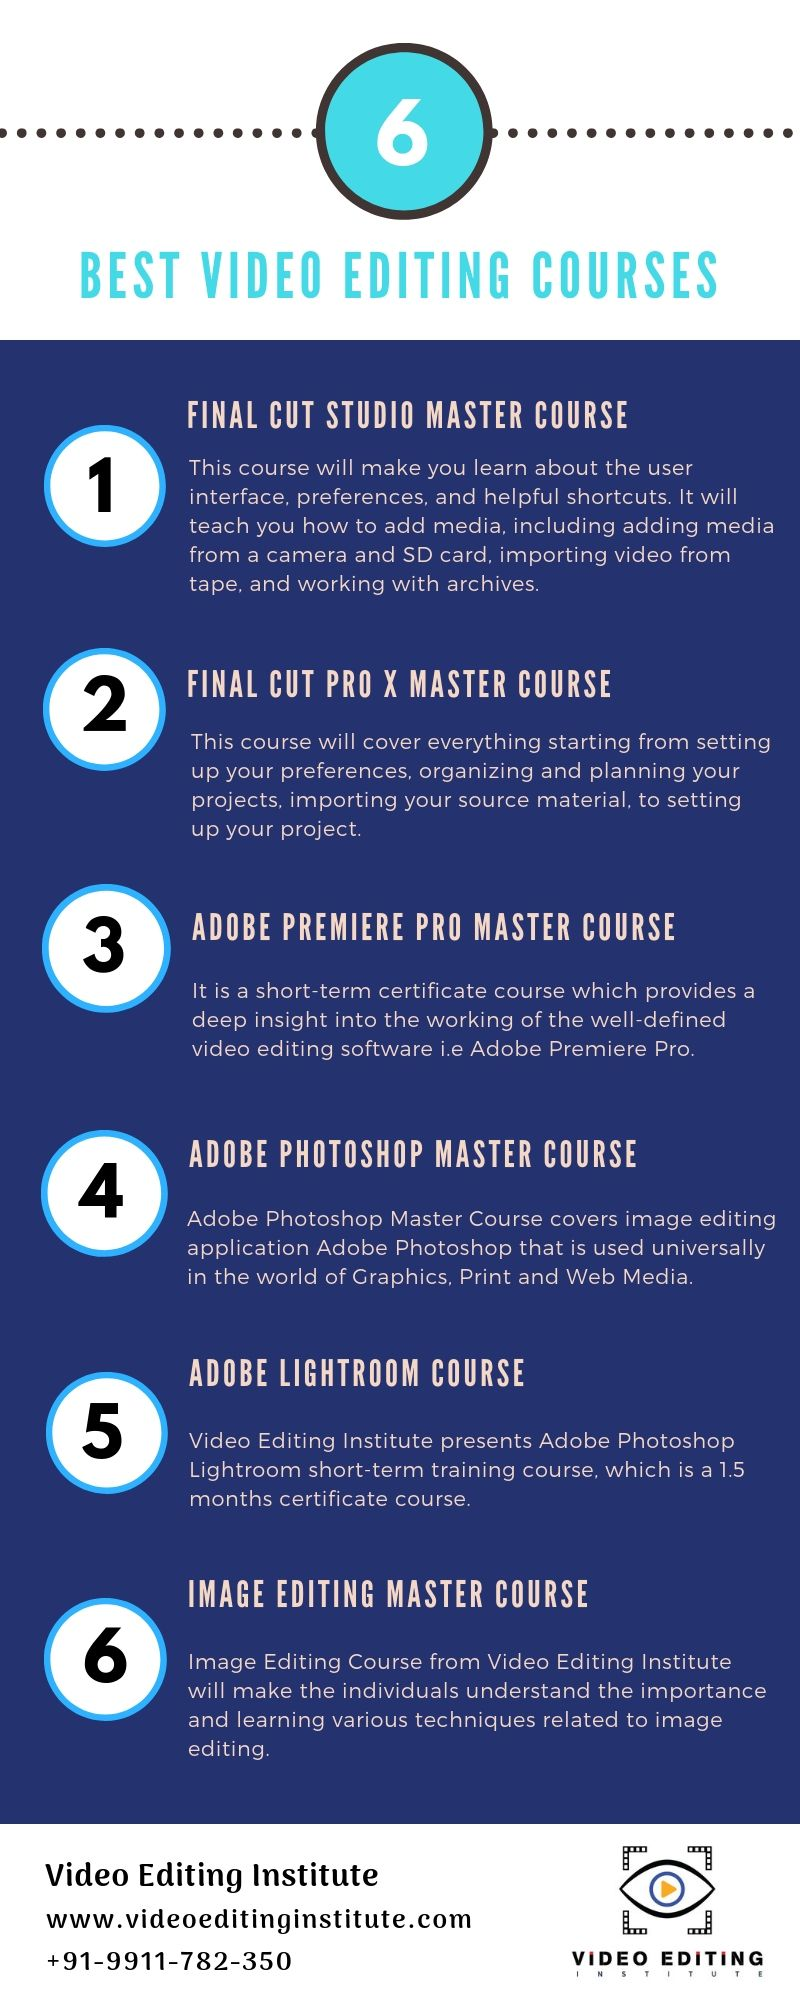 Experience the professional training with Video Editing Institute